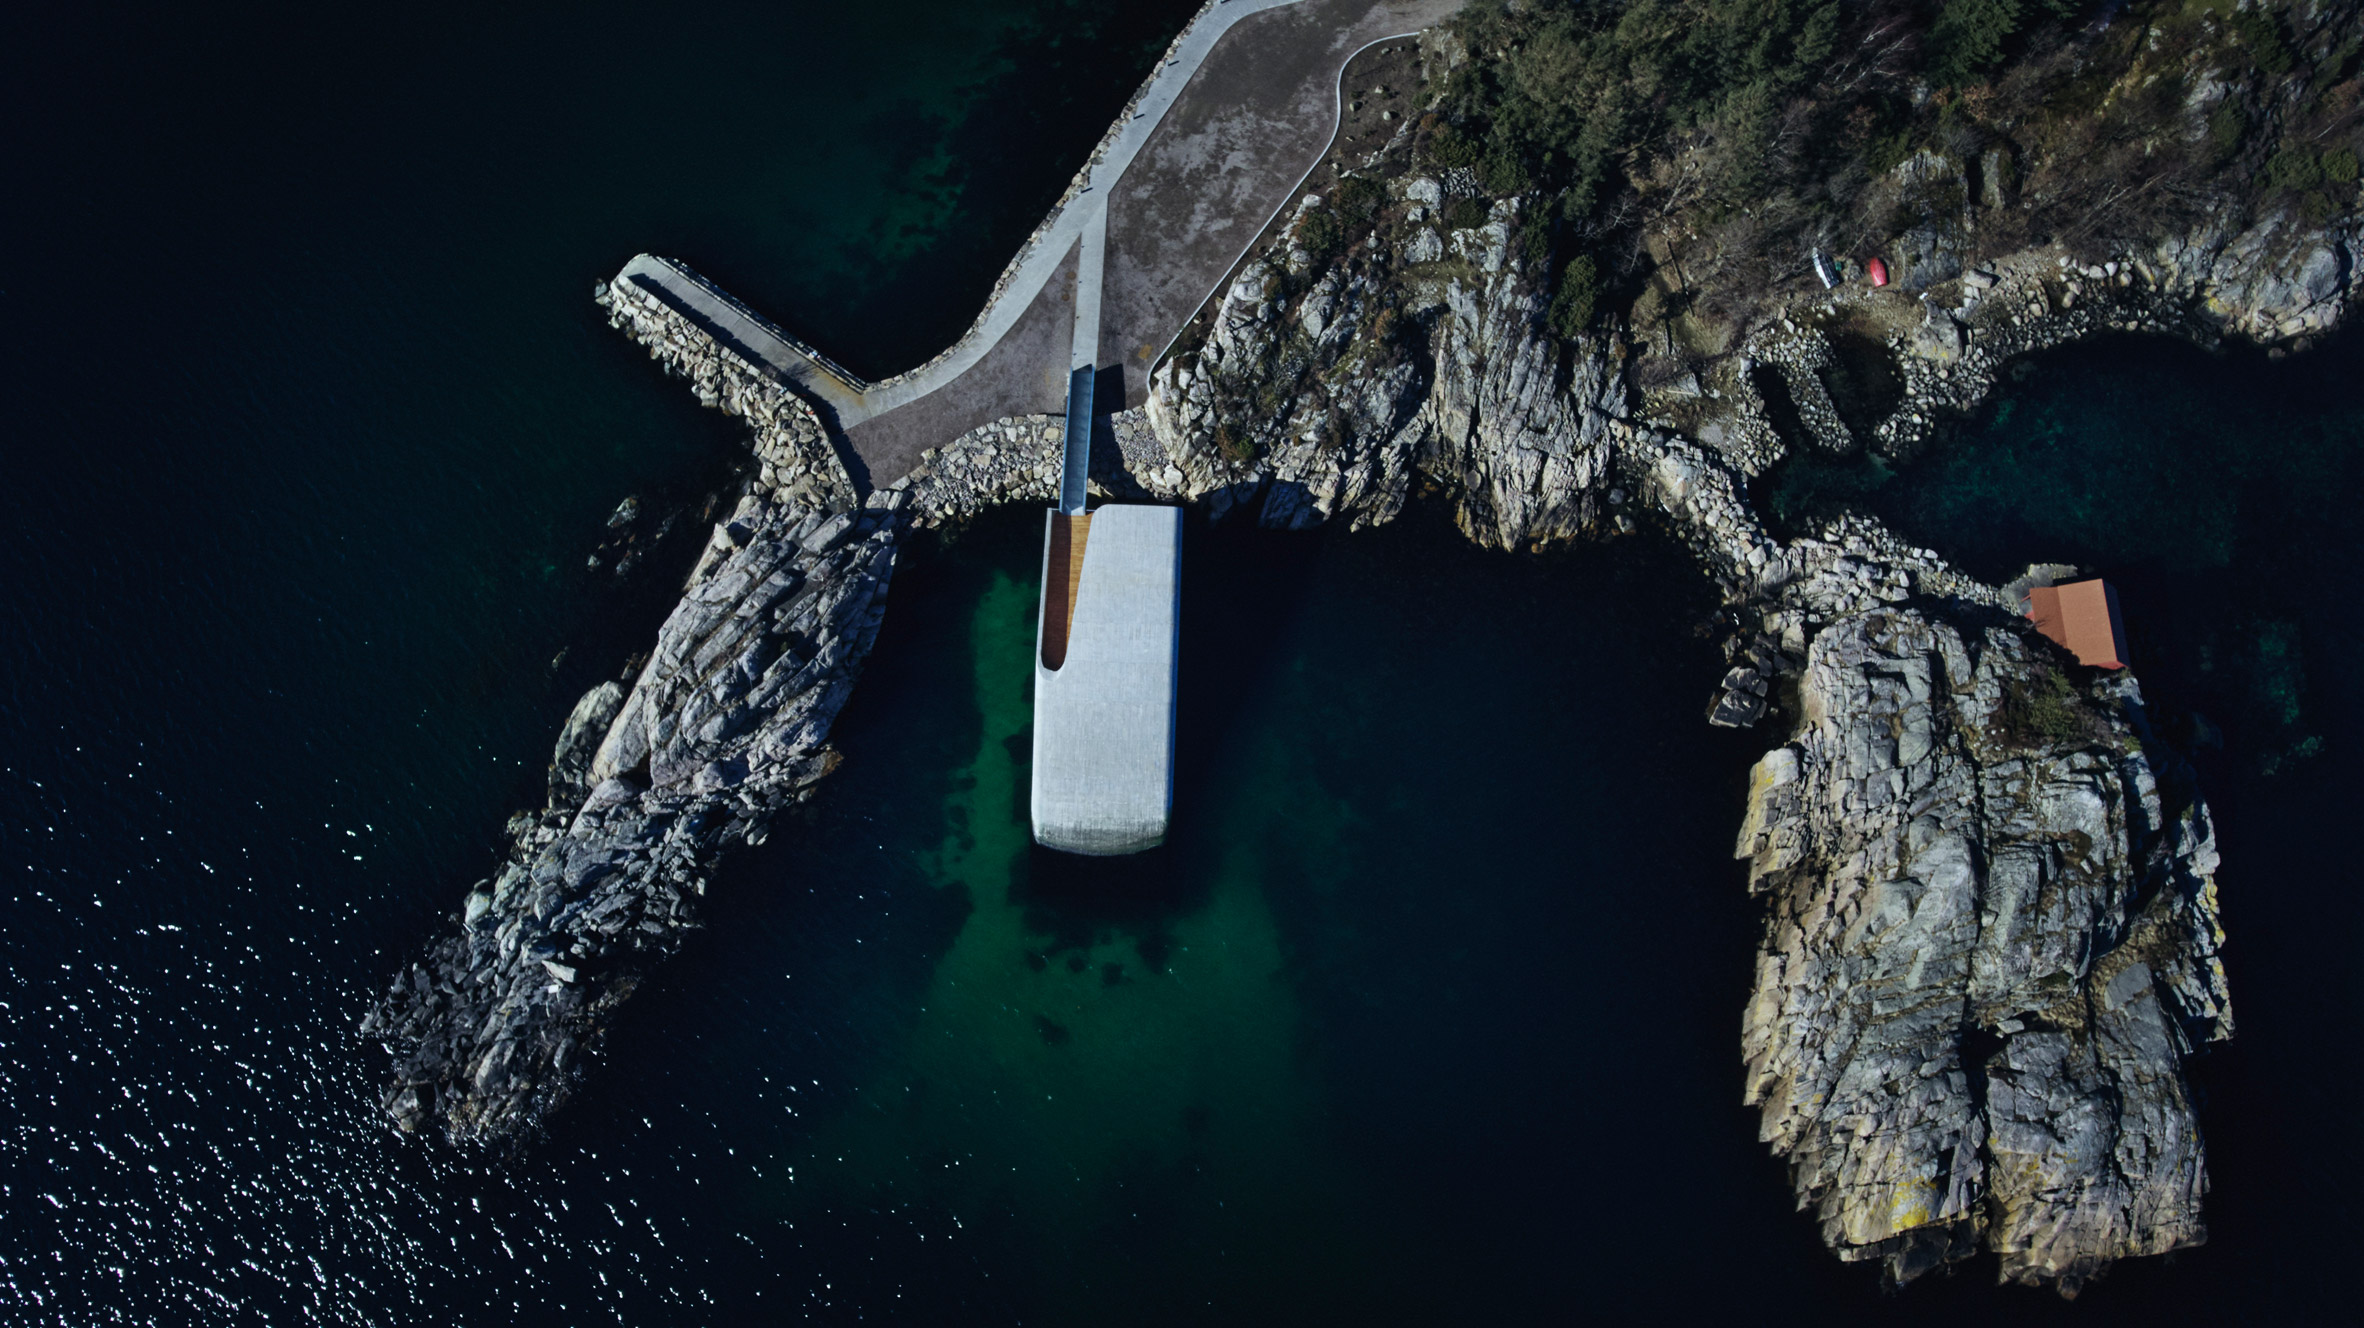 Aerial photo of Under, Europe's first underwater restaurant, by Snohetta in Båly, south Norway